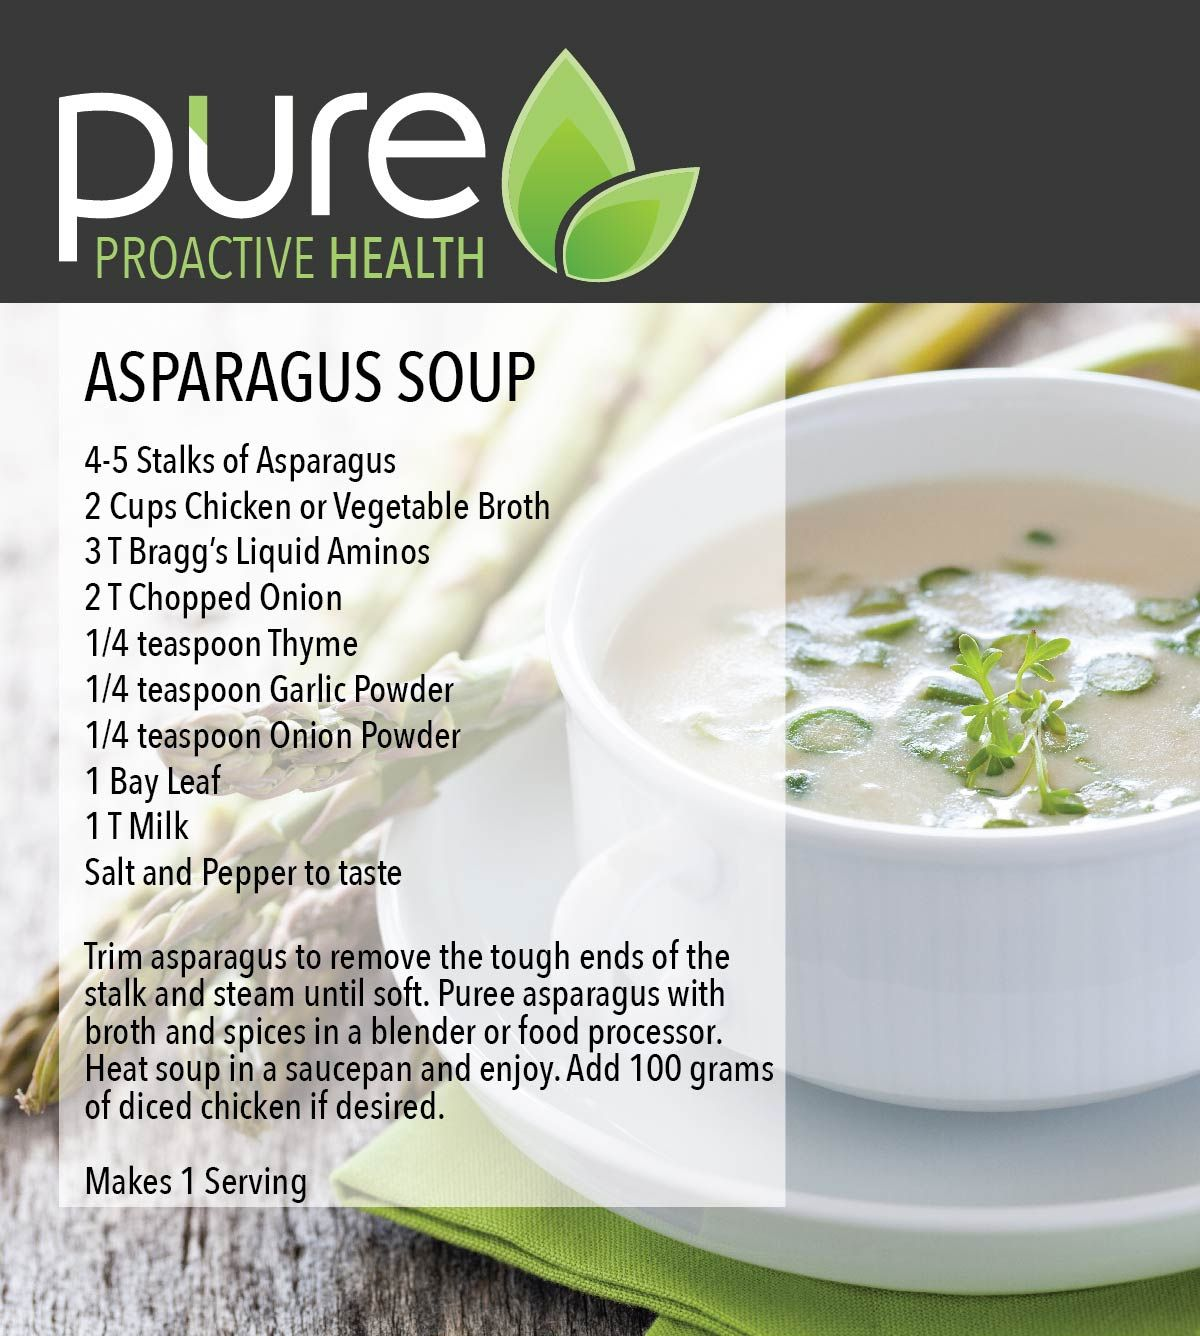 Asparagus Soup Level One Pure Proactive Health Soup Workout Food Recipes